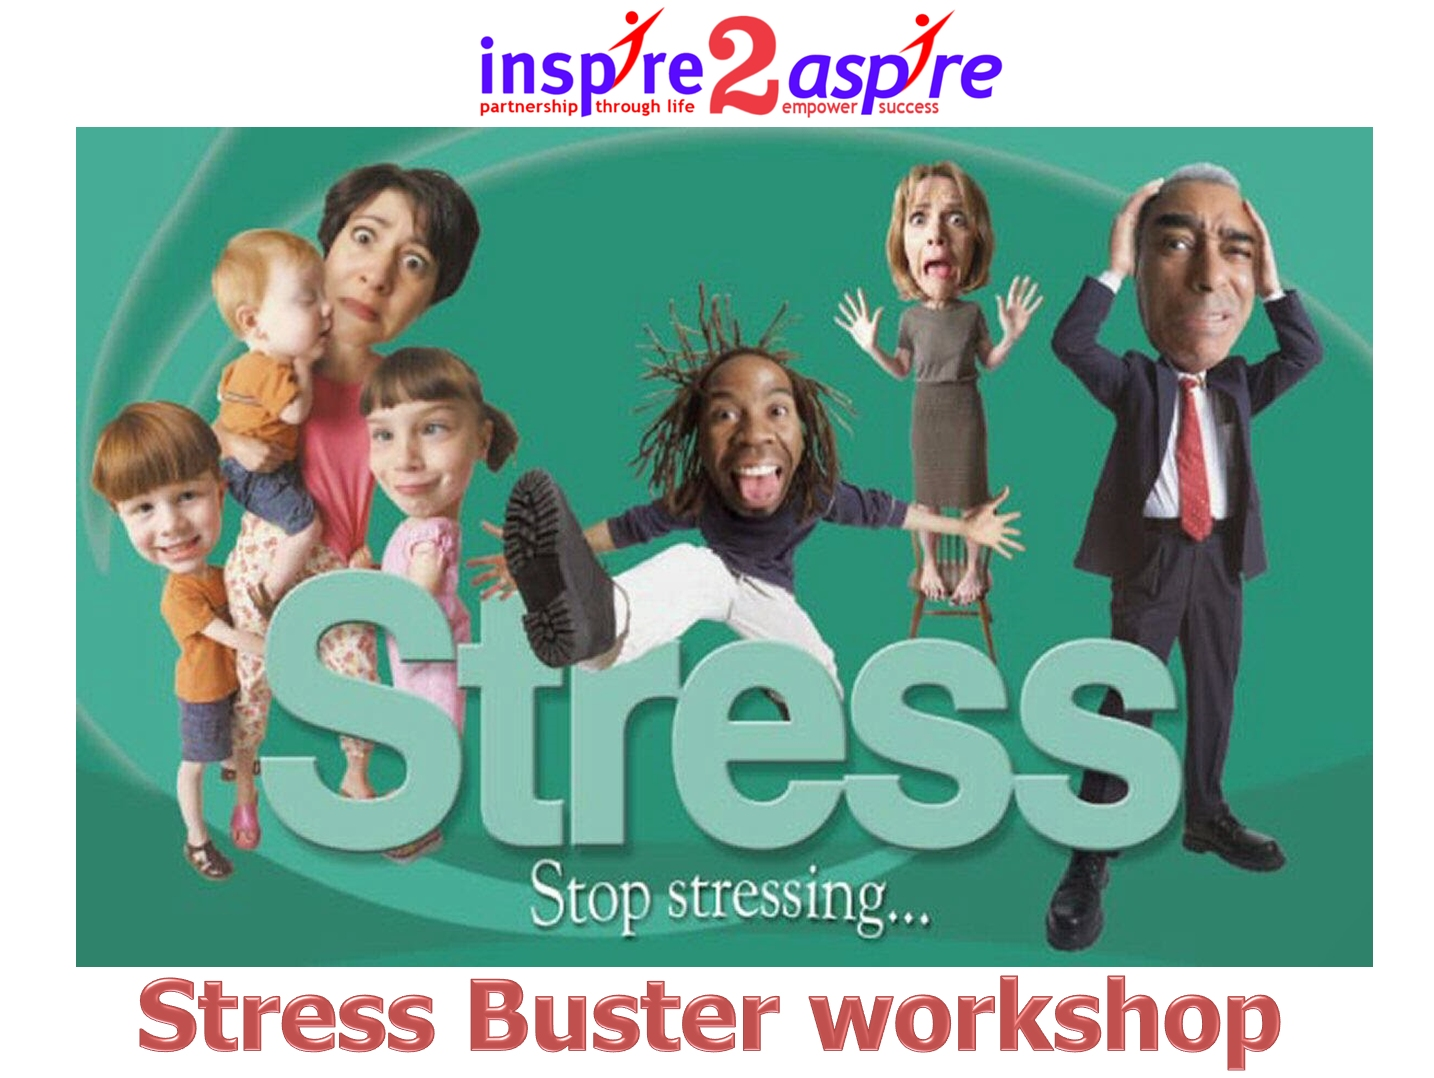 Stress Buster Workshop